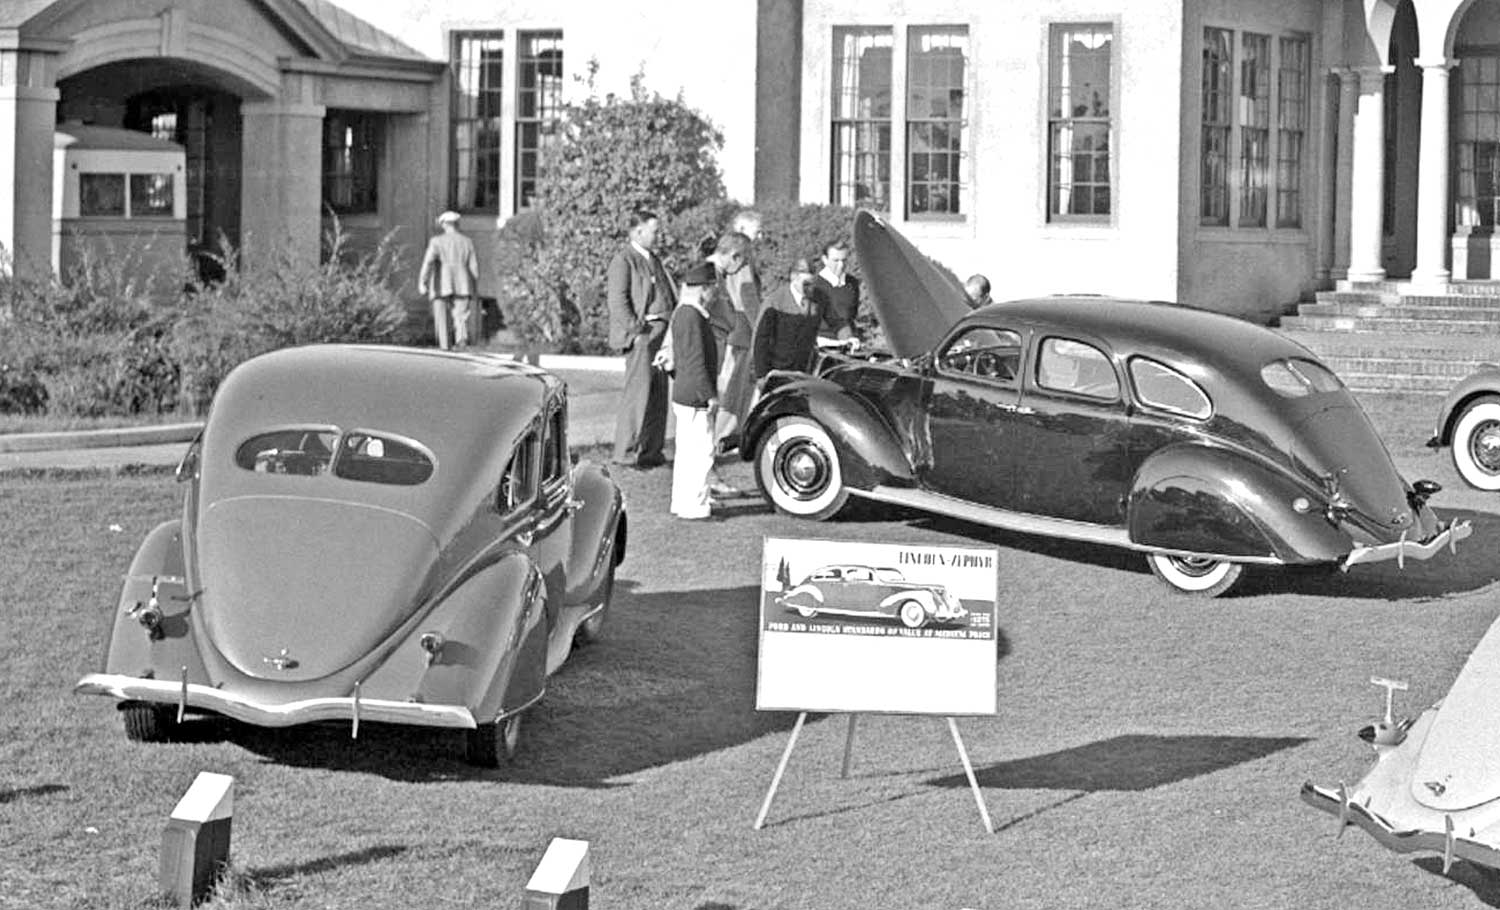 Lincoln Zephyr Introduction At The Prestigious Pinehurst Country